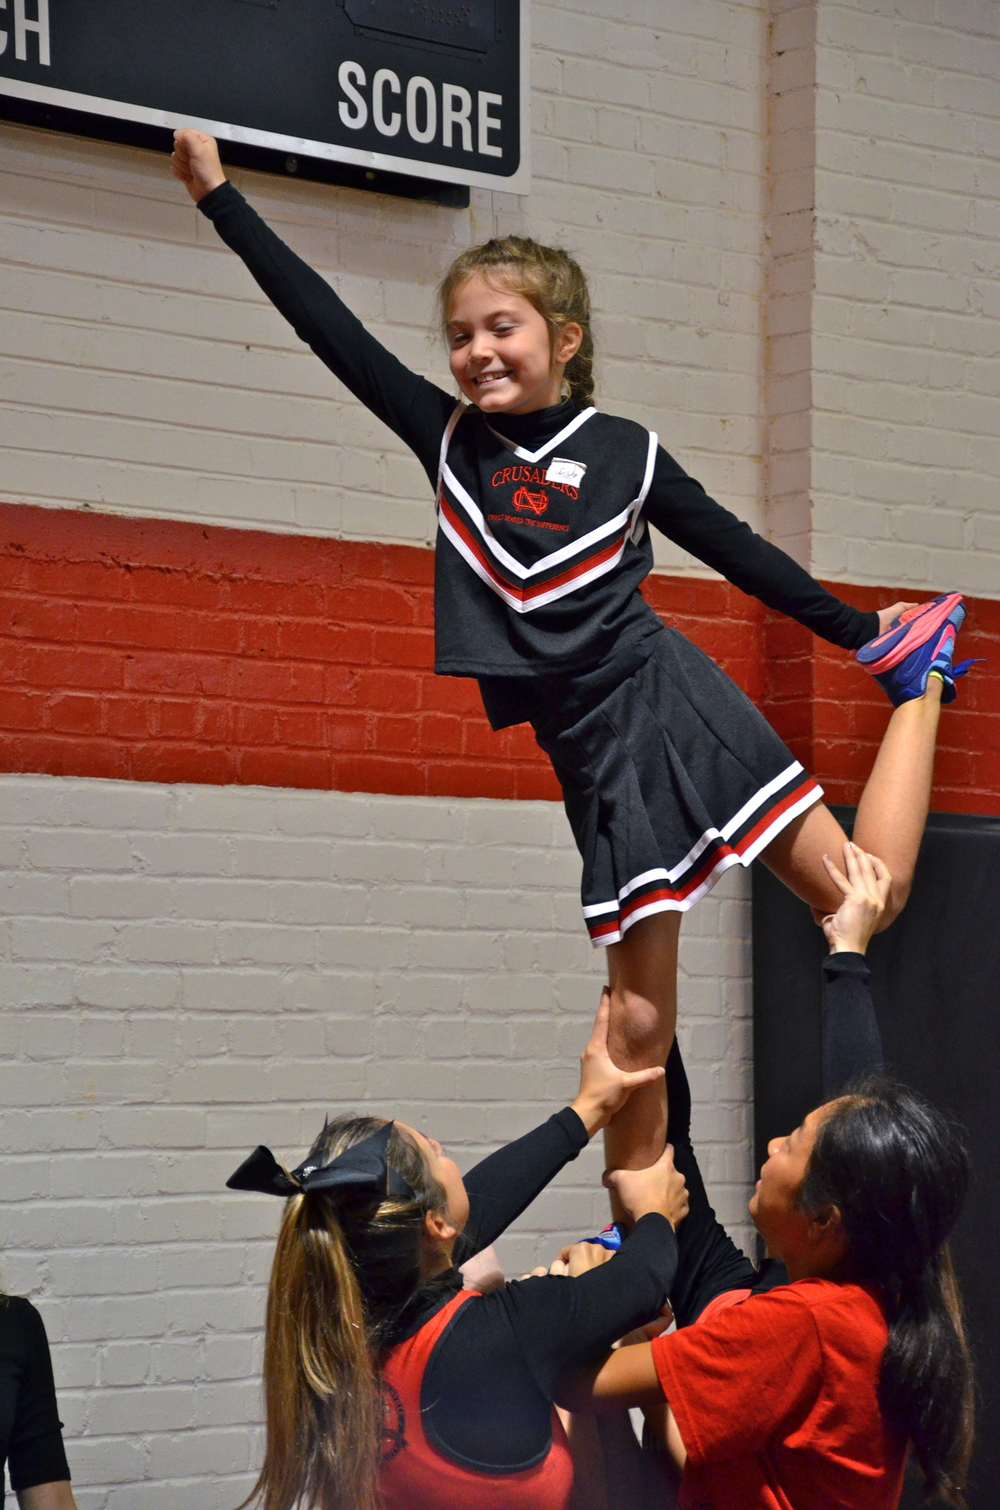 Smiles show all around for this cheery tyke as she holds her stance at NGU's cheer camp.